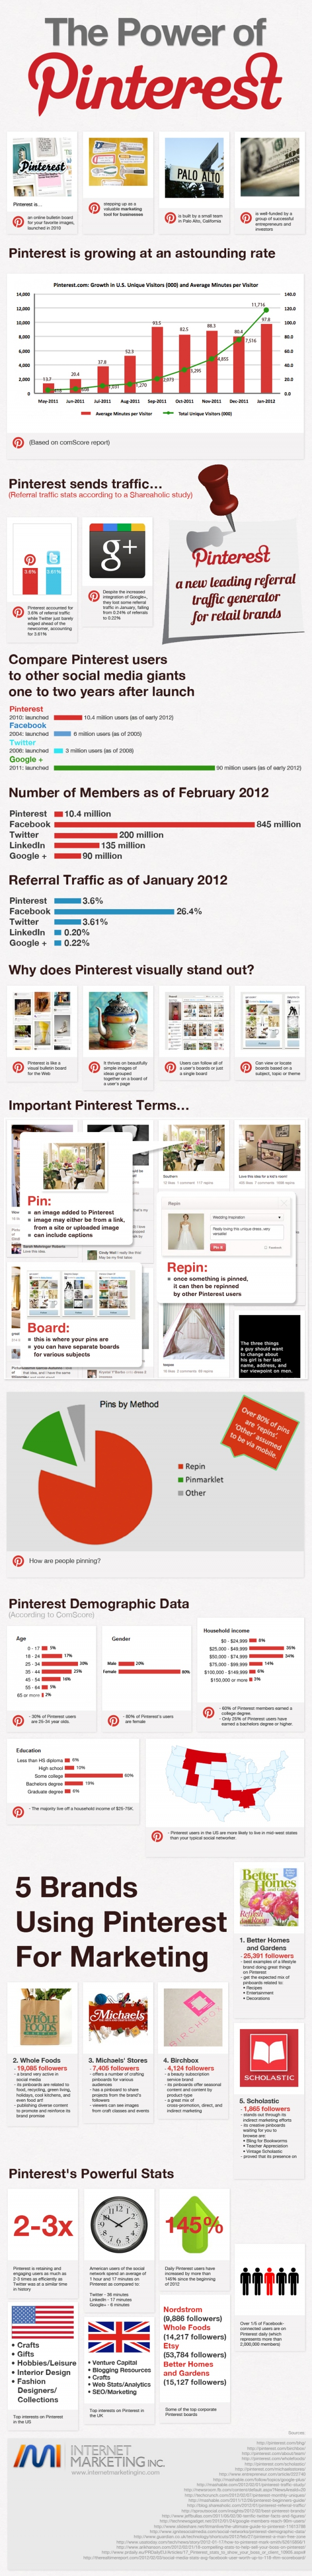 power-of-pinterest-infographic